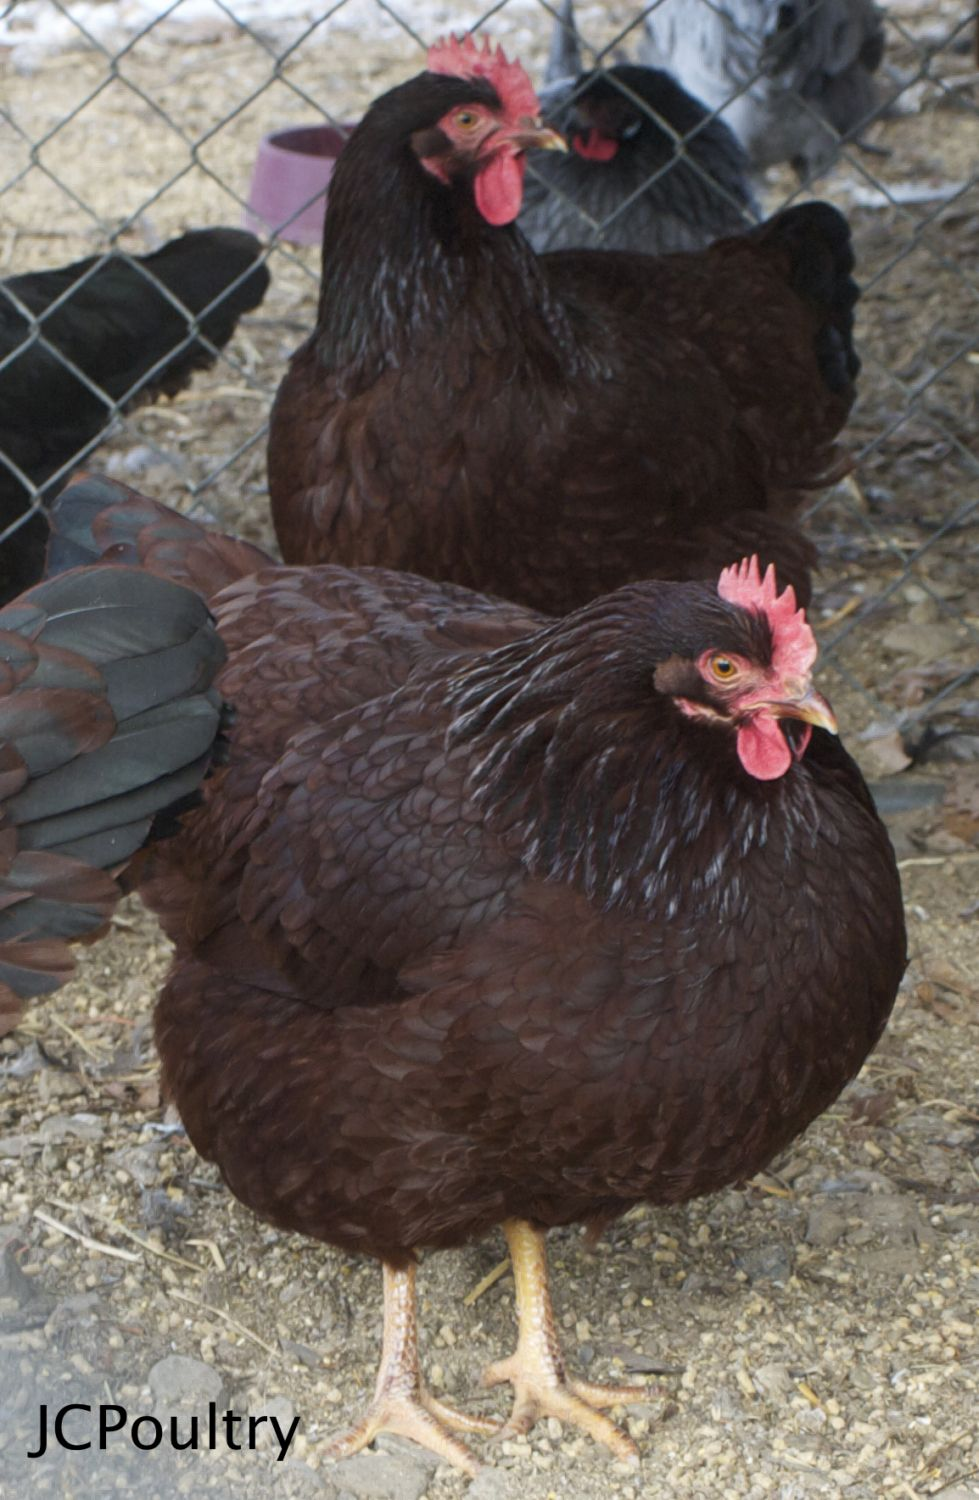 Remarkable, rather Mature rhode island red hen are